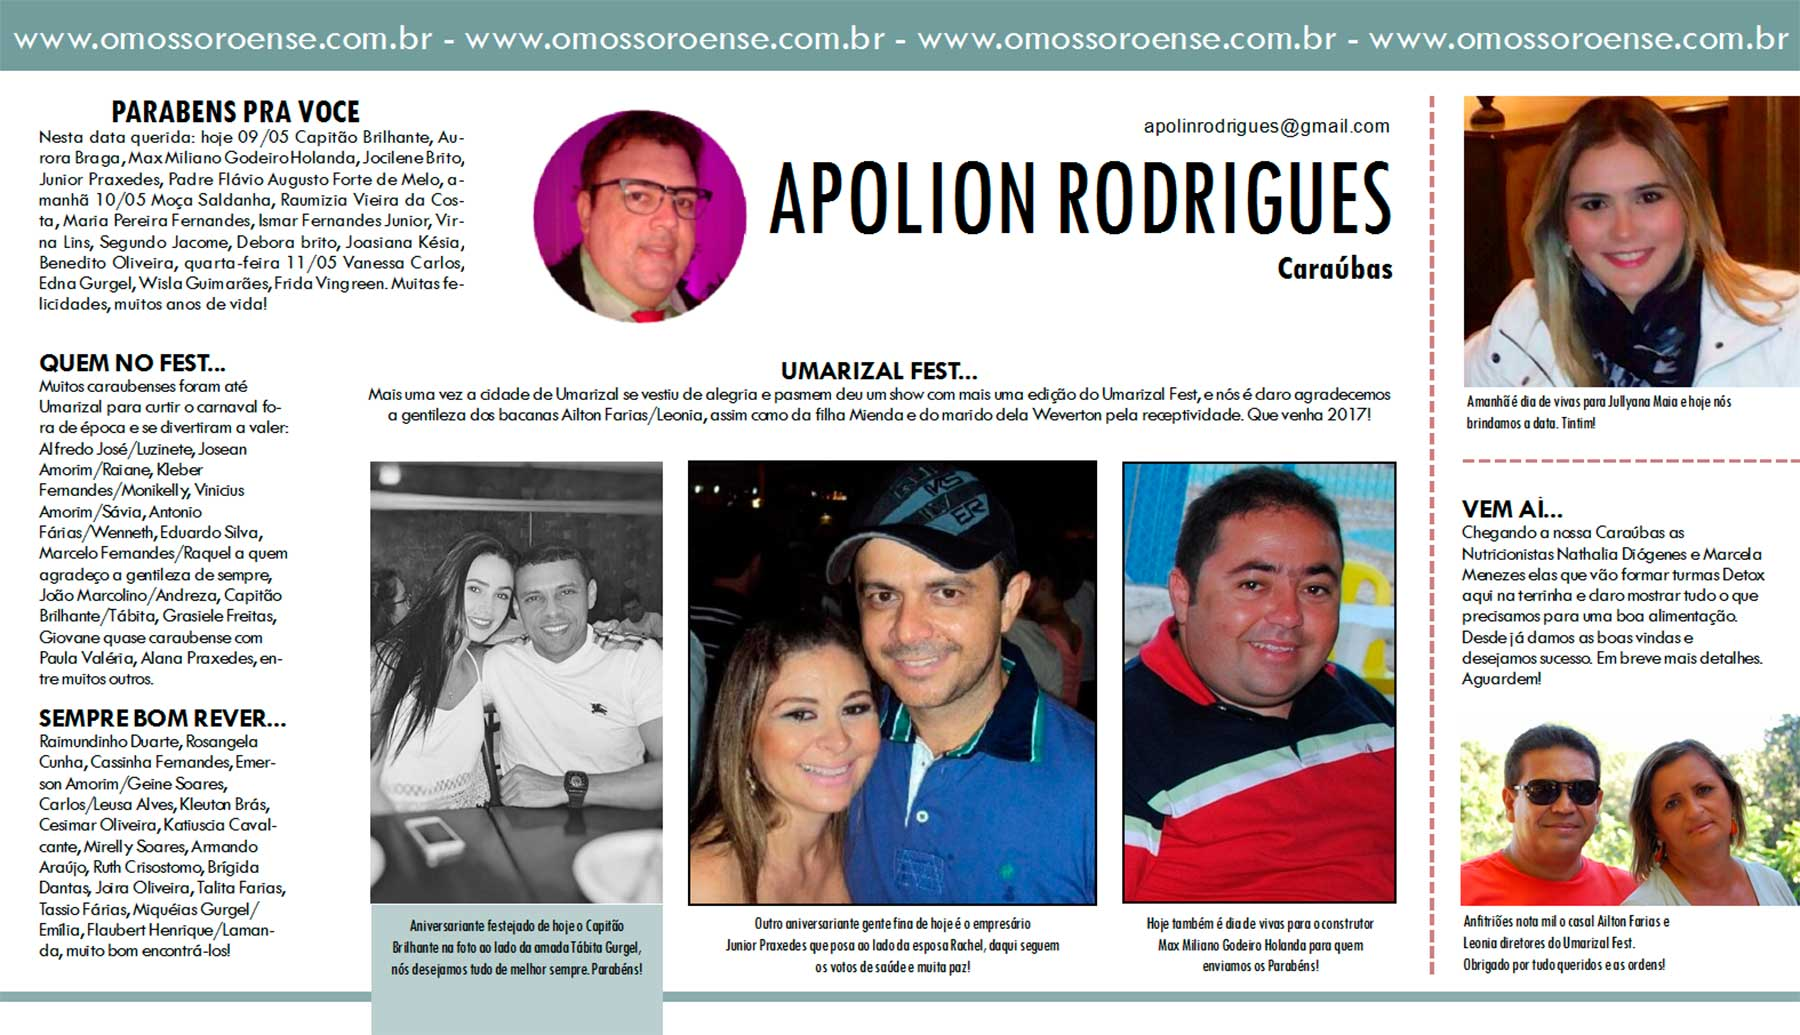 APOLION-RODRIGUES-09-05-2016